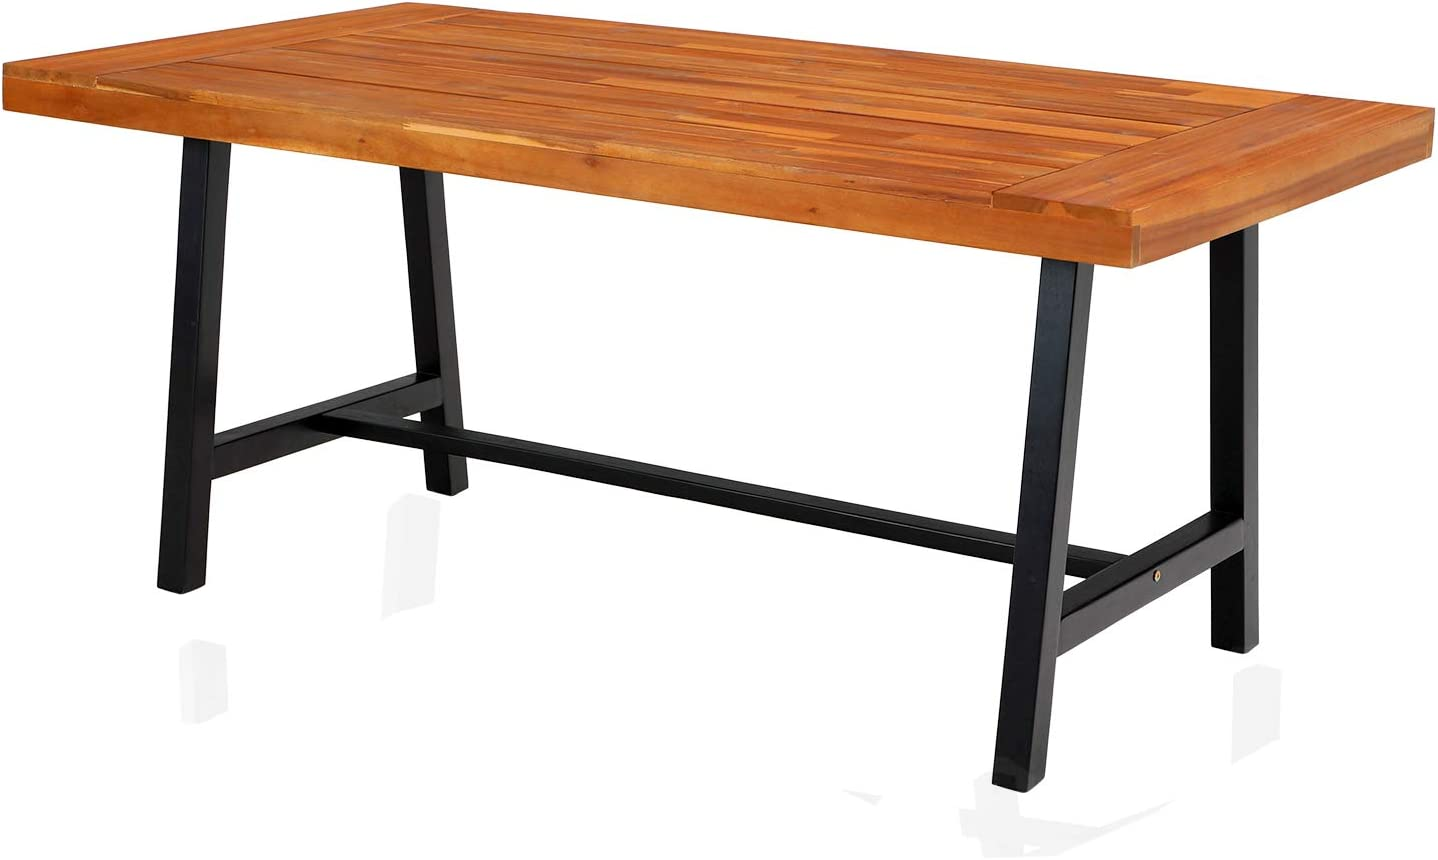 """PHI VILLA Outdoor Acacia Wood Dining Table, 68"""" Long Oil Finished Teak Wooden Dining Table Supports 550lbs for 6 People, Patio, Yard, Deck, Porch"""